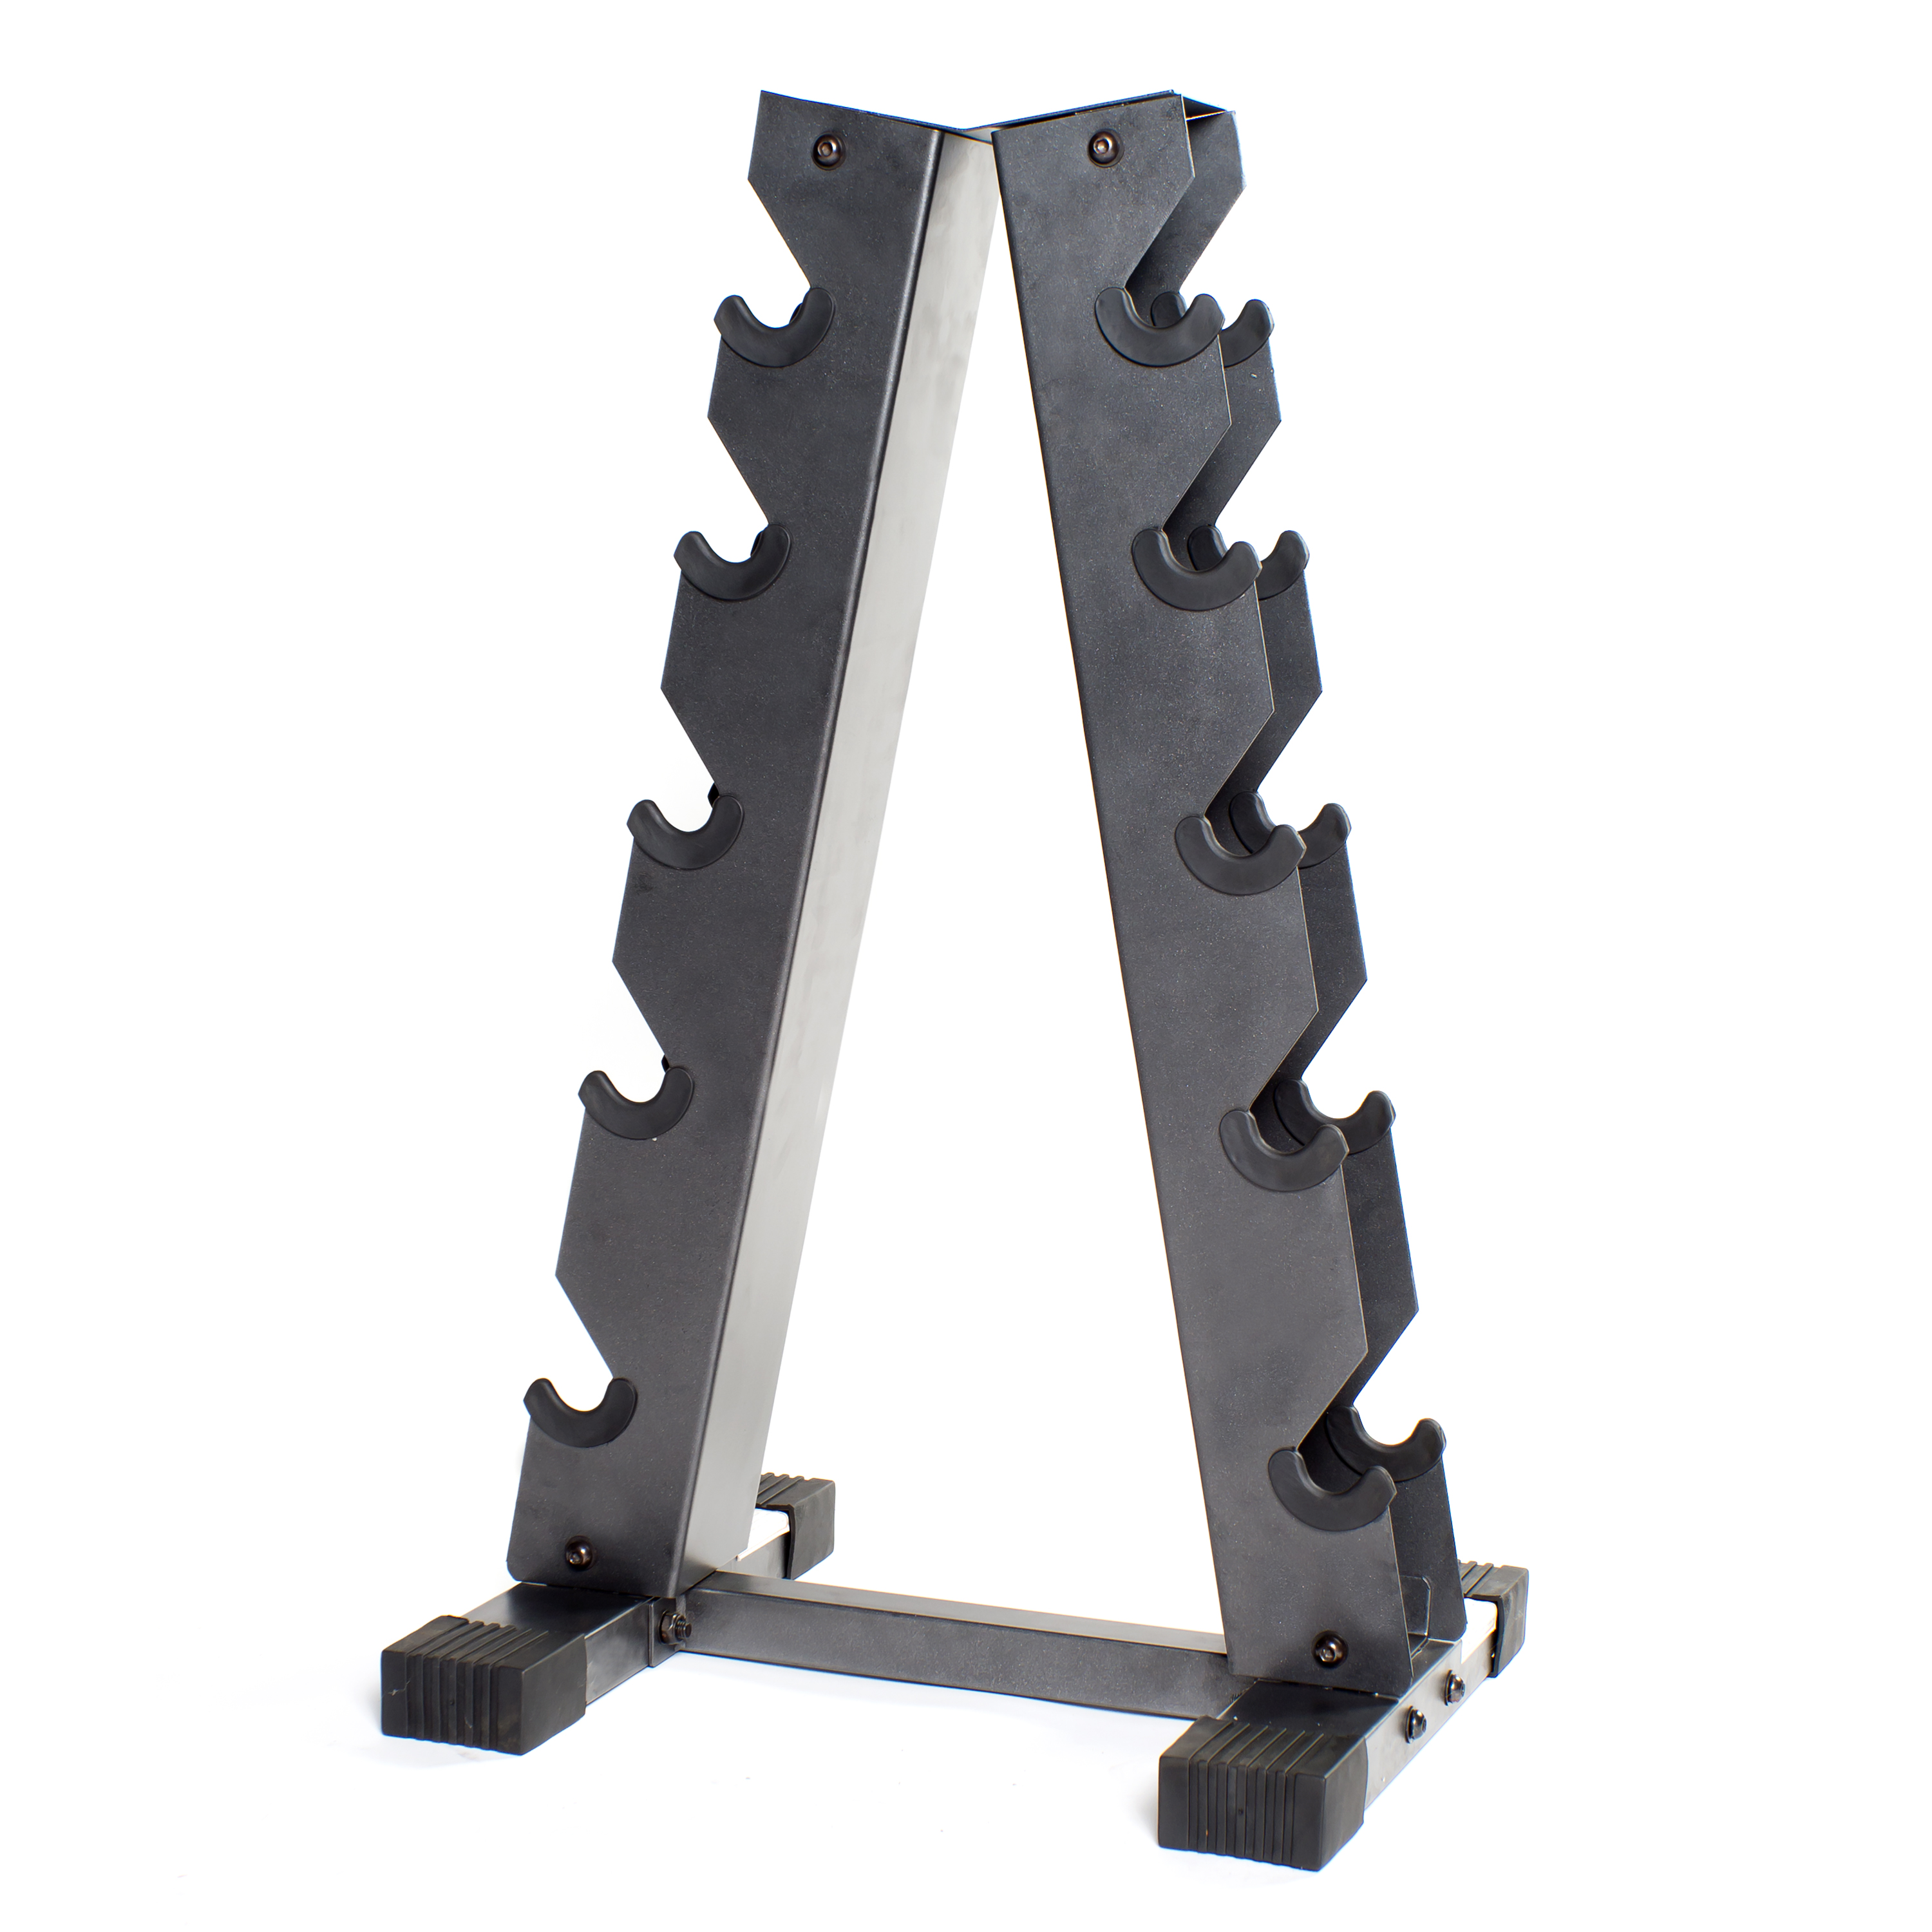 weight three pin tier dumbbell xm quality storage ft rack